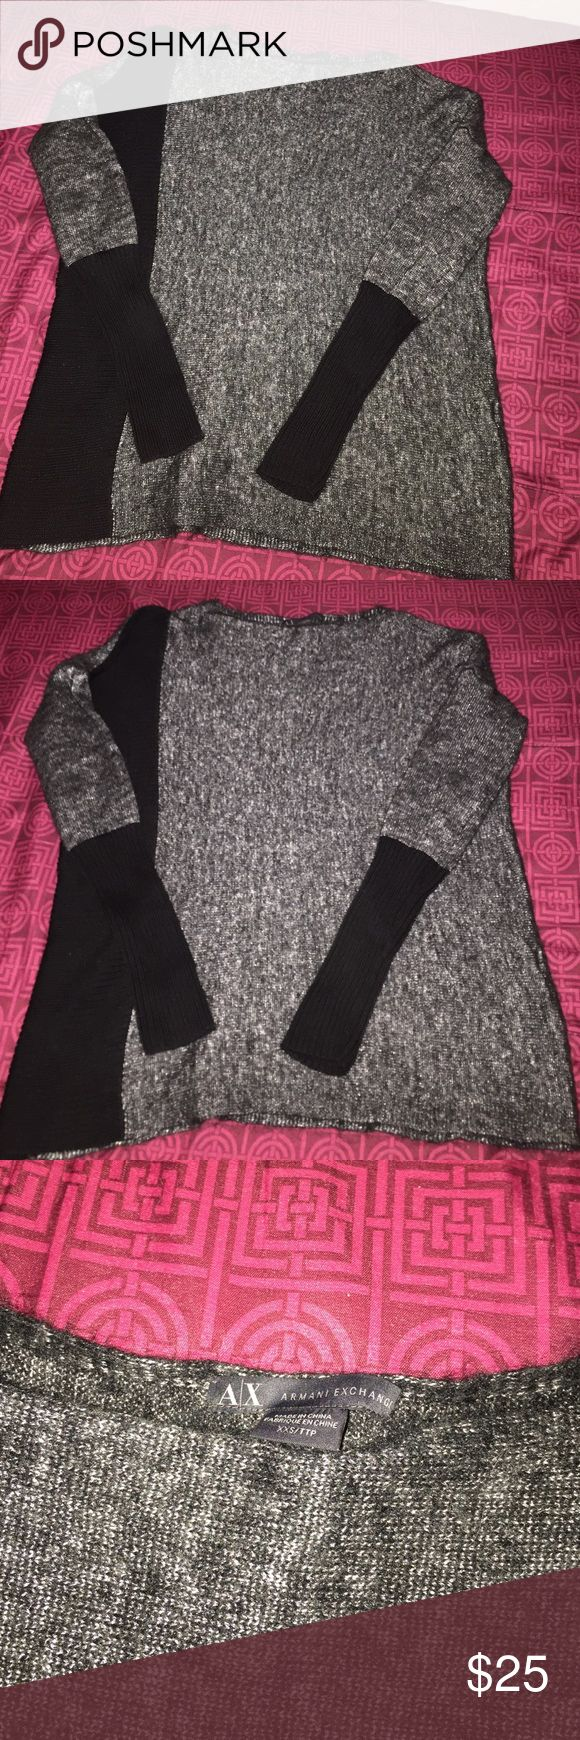 Pullover sweater Wool and mohair sweater, great piece to pair with leggings Armani Exchange Sweaters Crew & Scoop Necks